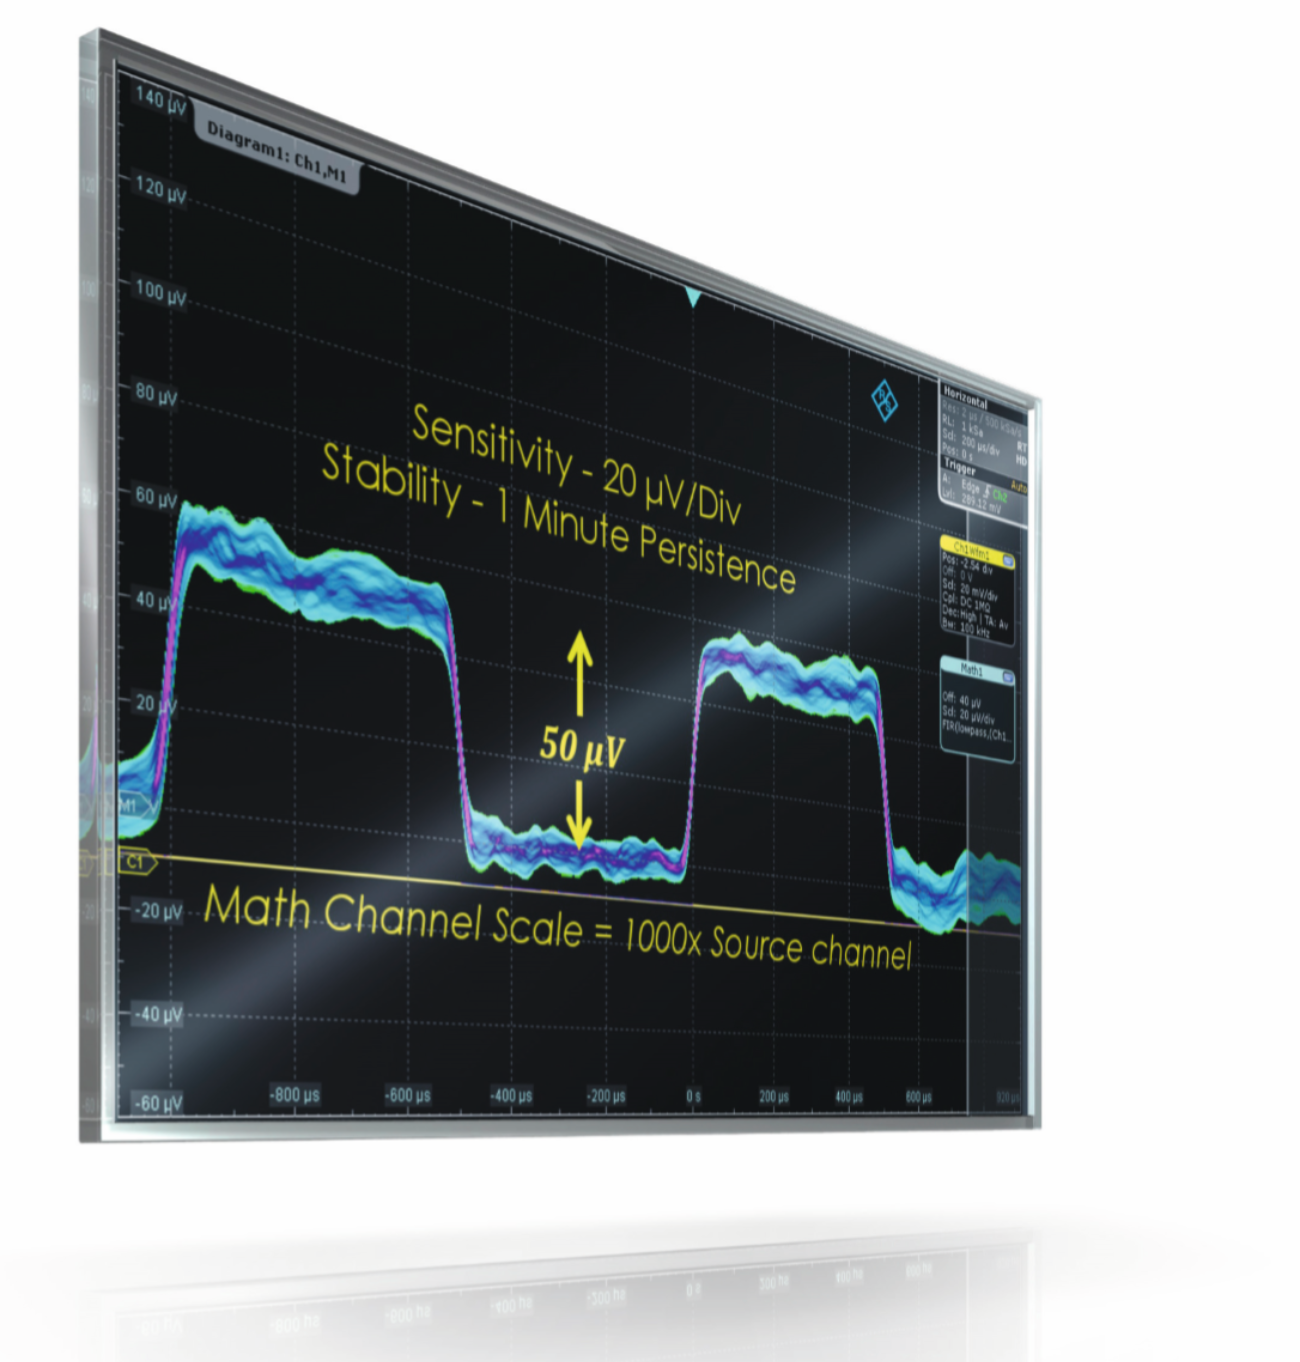 re-referencing-microvolt-level-measurements-rto-oscilloscopes_ac_3607-2855-92_01.png